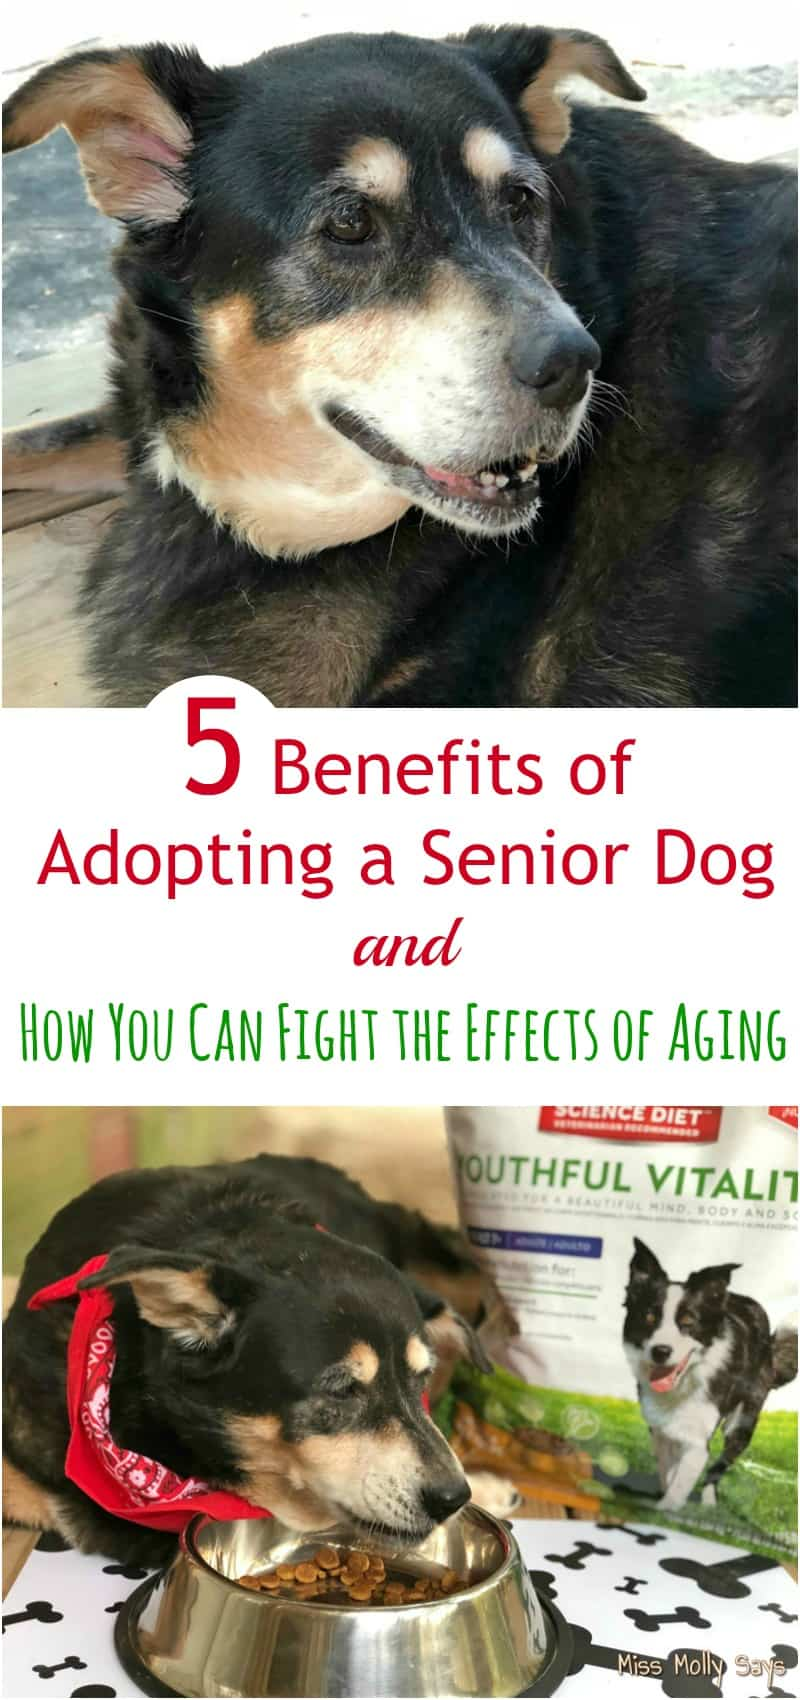 5 Benefits of Adopting a Senior Dog and How You Can Fight the Effects of Aging #hillstransforminglives